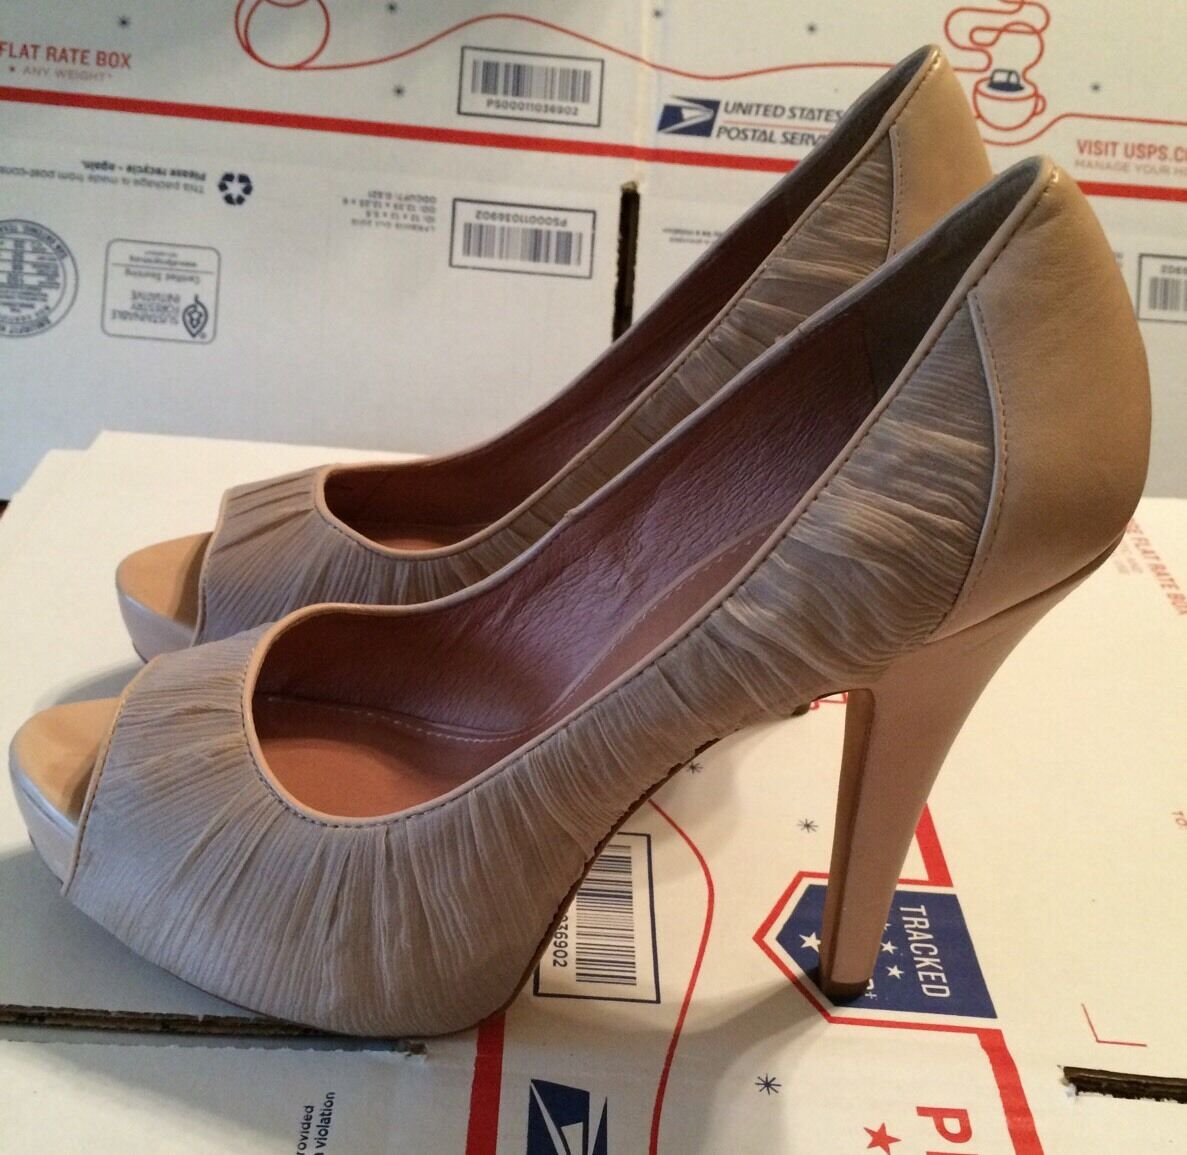 10 NEW Vince Camuto Beige Fabric & Leather Platform shoes